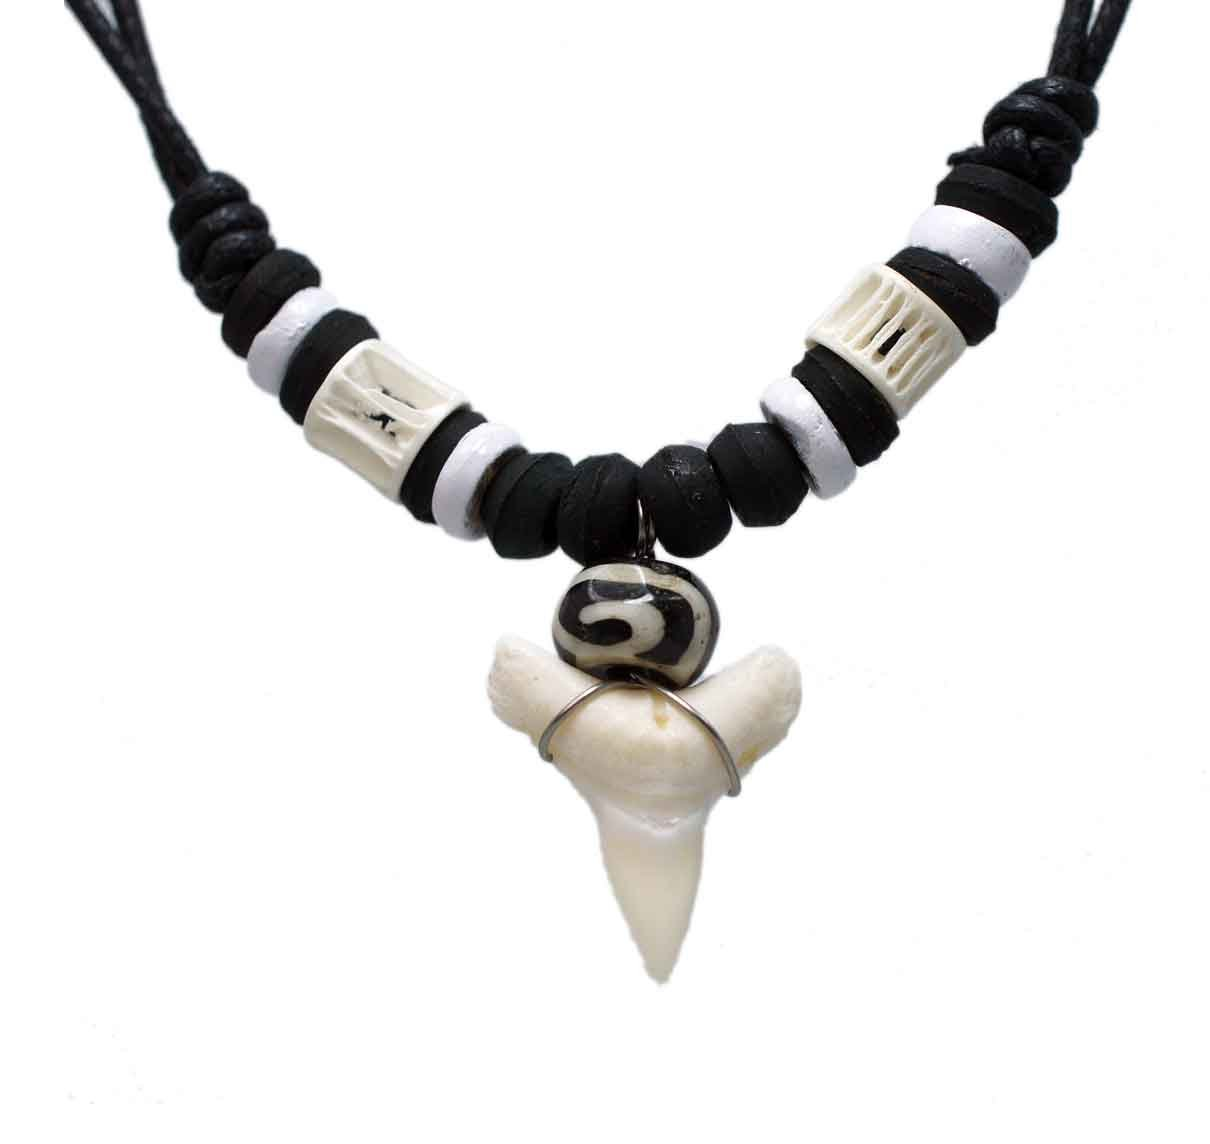 exoticdream Real Shark Tooth Necklace Surfer Hawaiian Beach Boys Girls Men - Color White Bone SHKTH0001